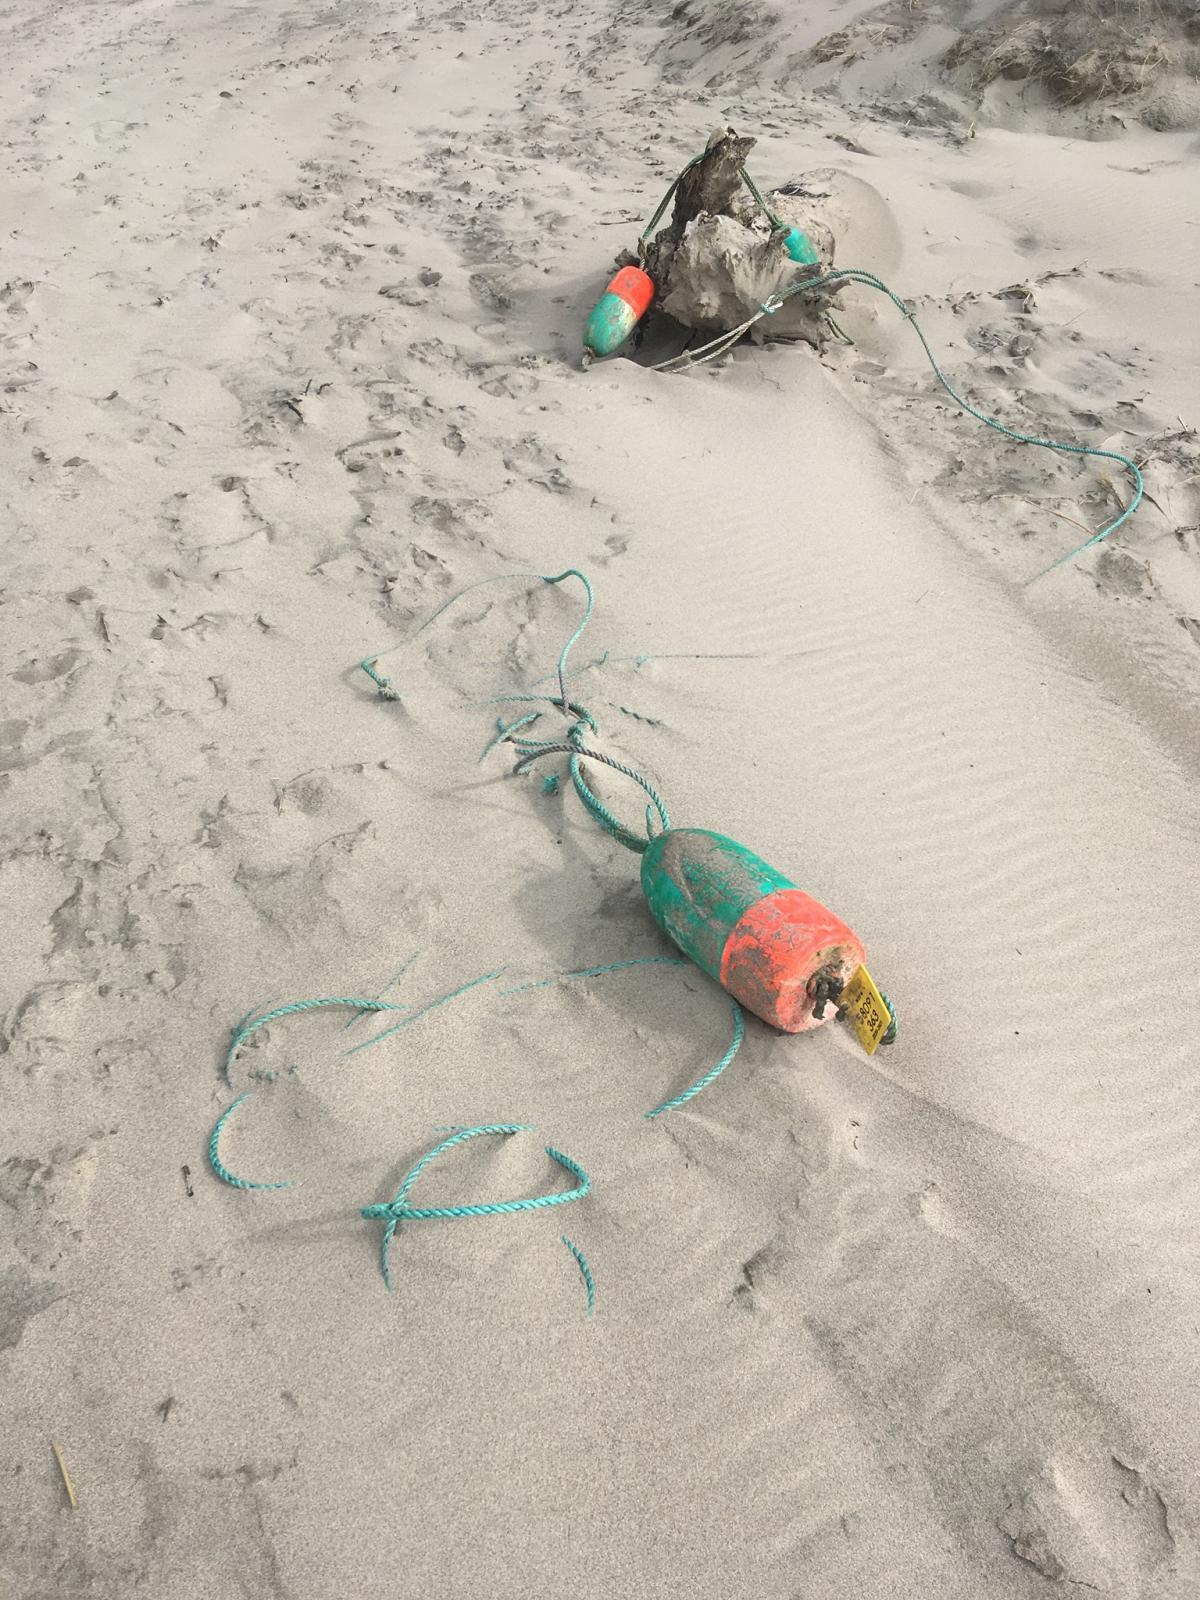 loose fishing gear in the no harvest zone of the cascade head marine reserve.